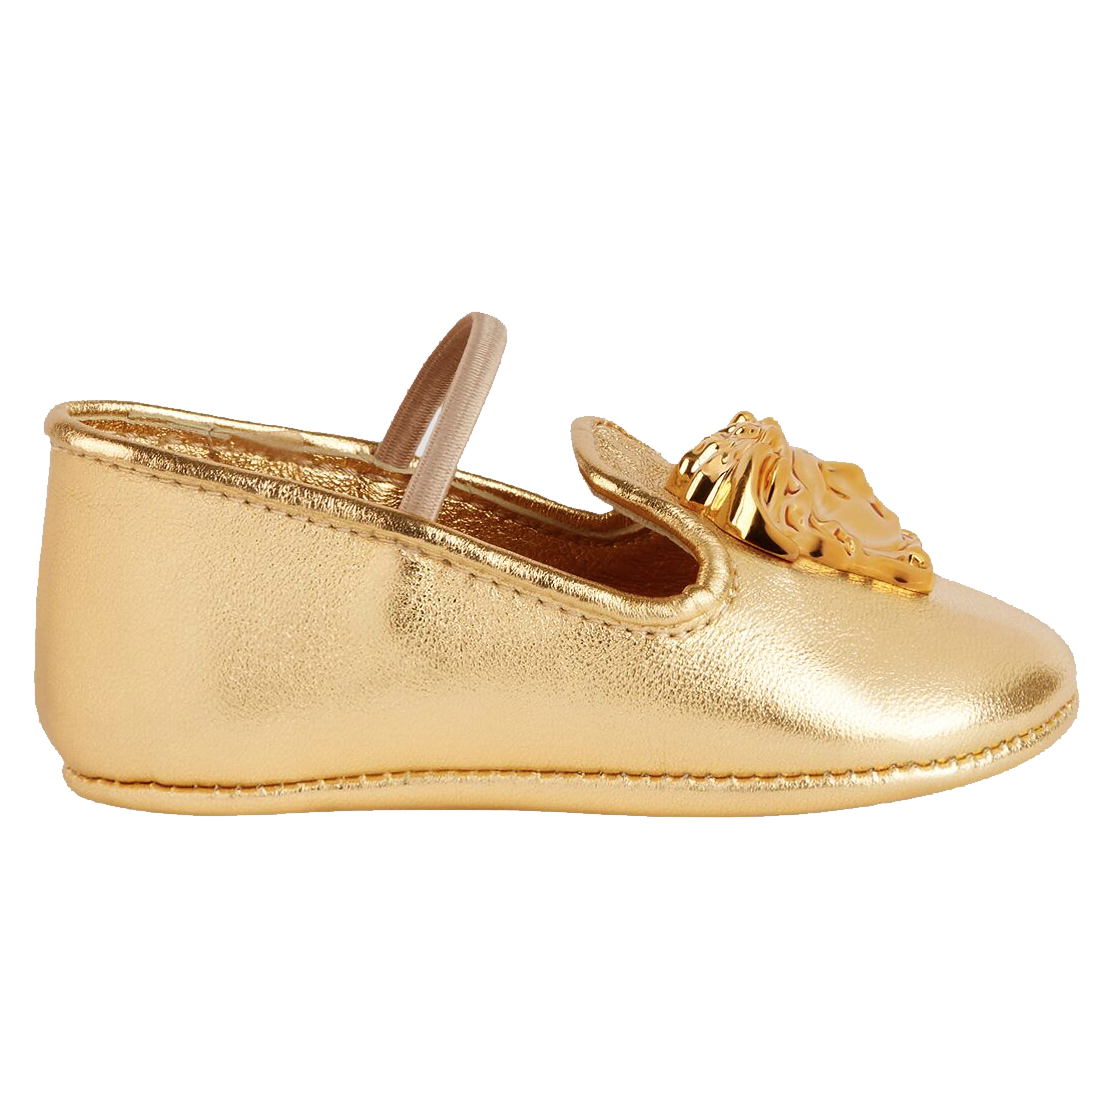 Newborn Baby Crib Shoes with Medusa-Gold